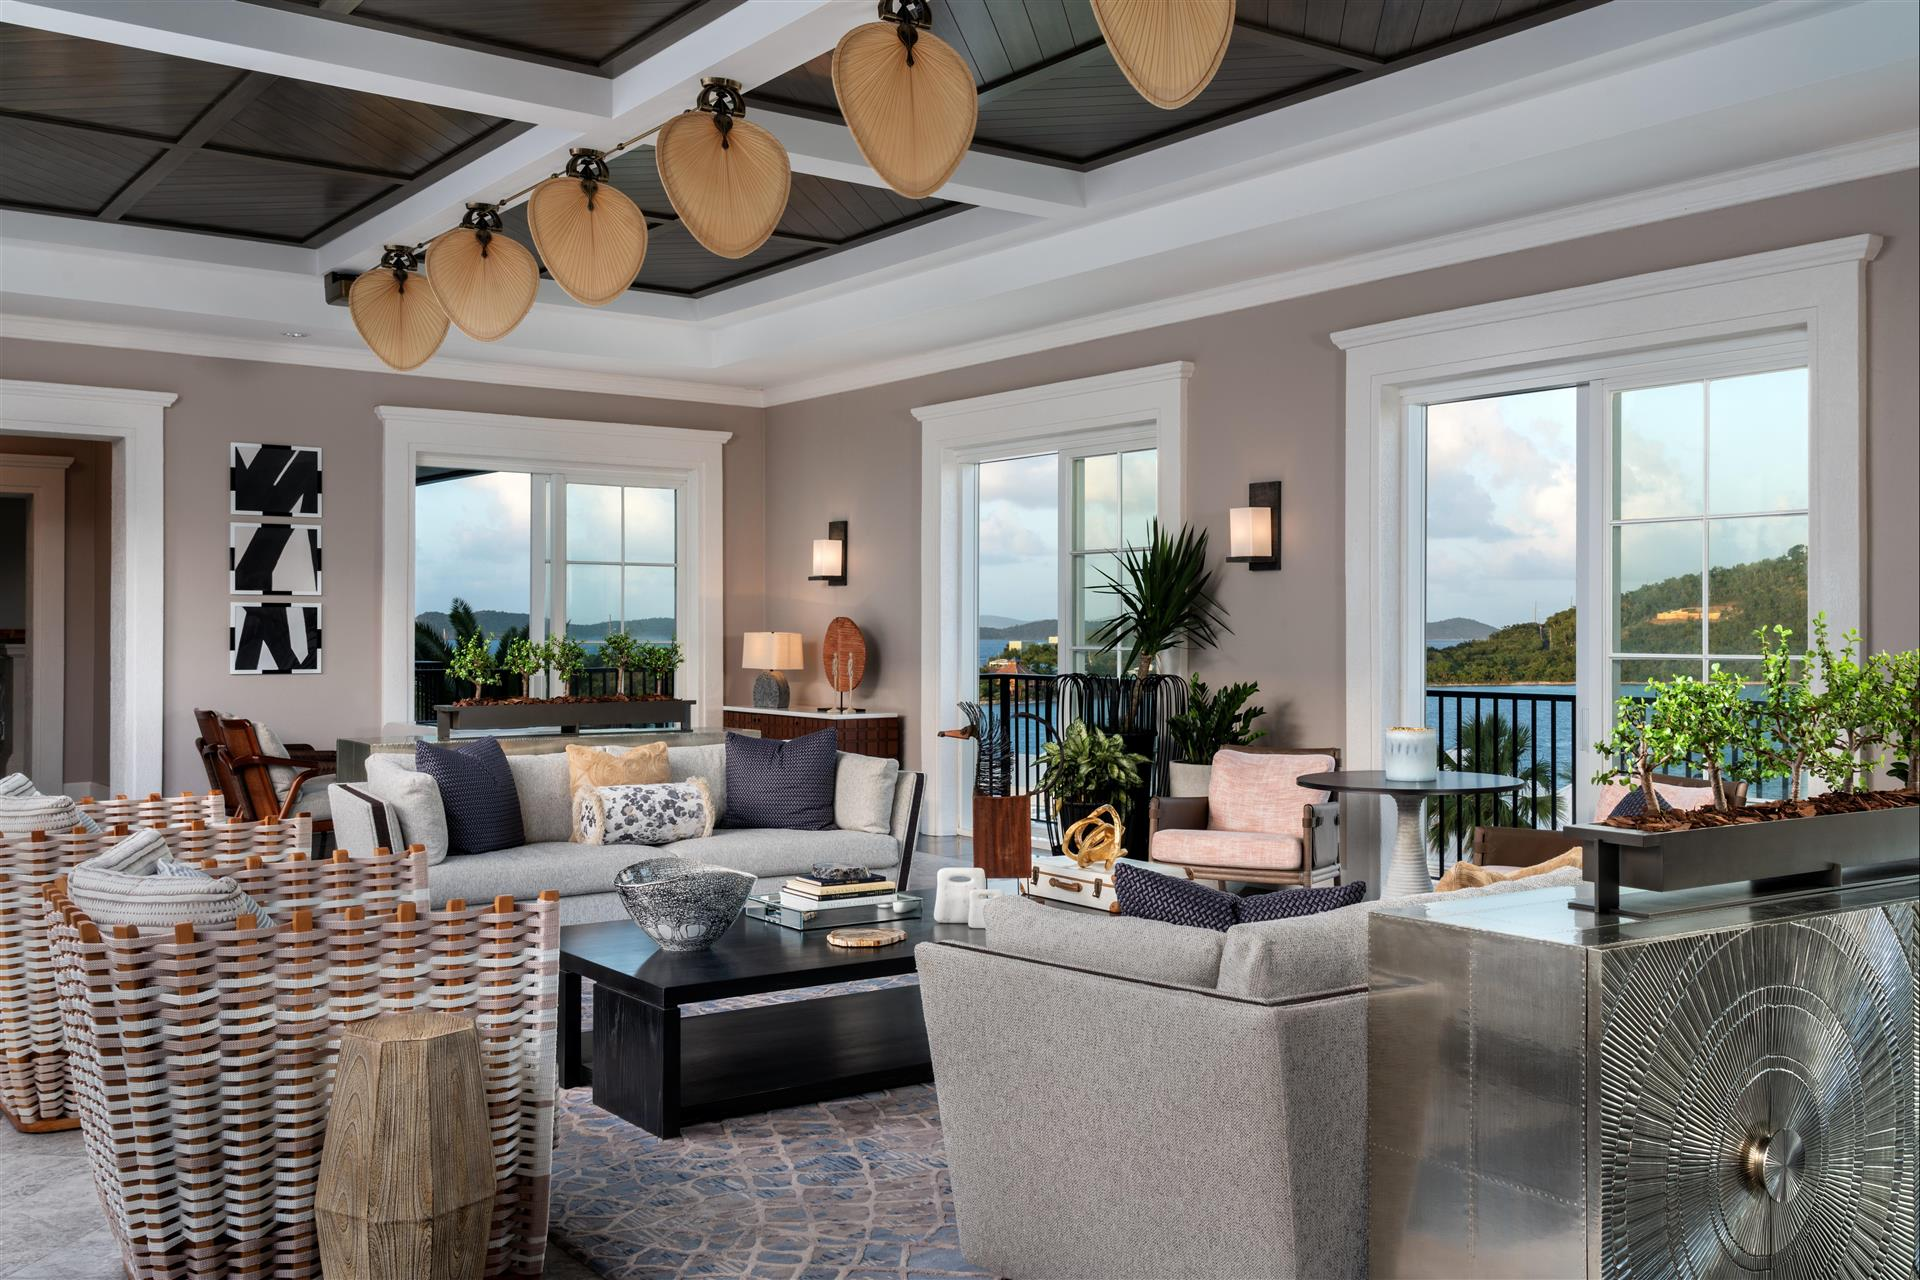 tropical decor design ideas pictures and inspiration.htm meetings and events at the ritz carlton st thomas  st thomas  vi  ritz carlton st thomas